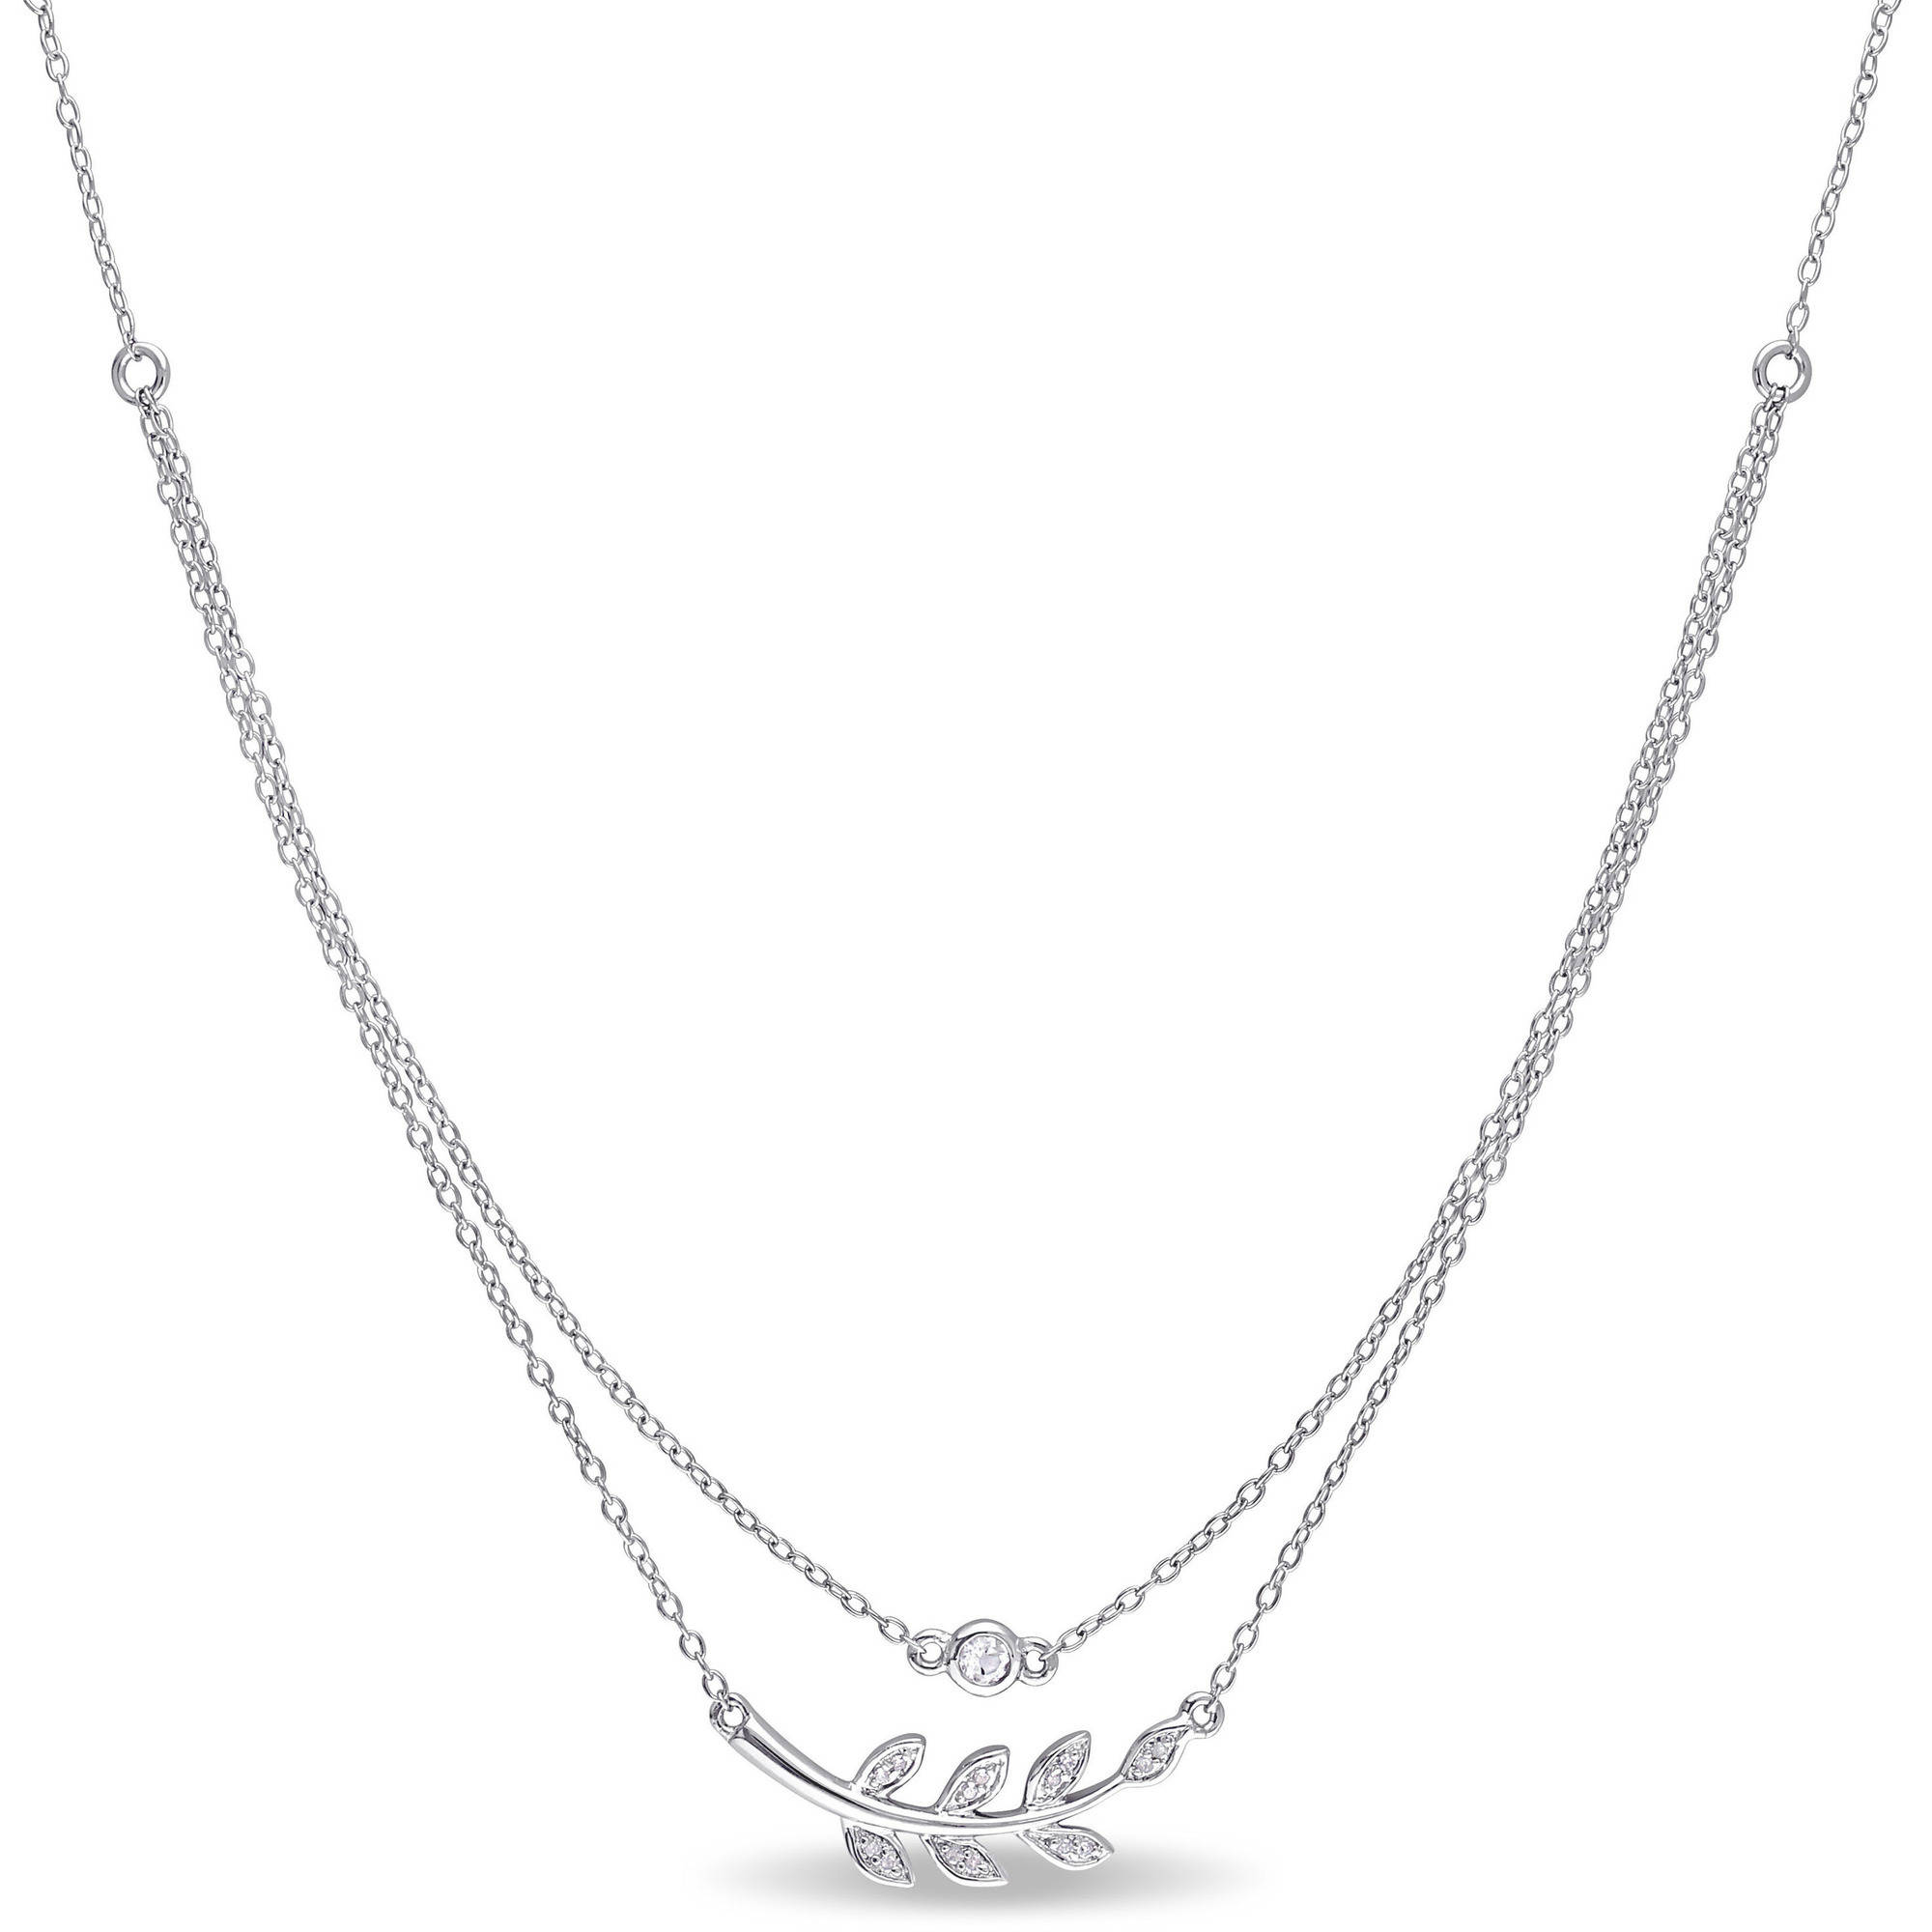 "Miabella 1 10 Carat T.G.W. White Topaz and Diamond-Accent Sterling Silver Layered Leaf Necklace, 17"" by Miabella"